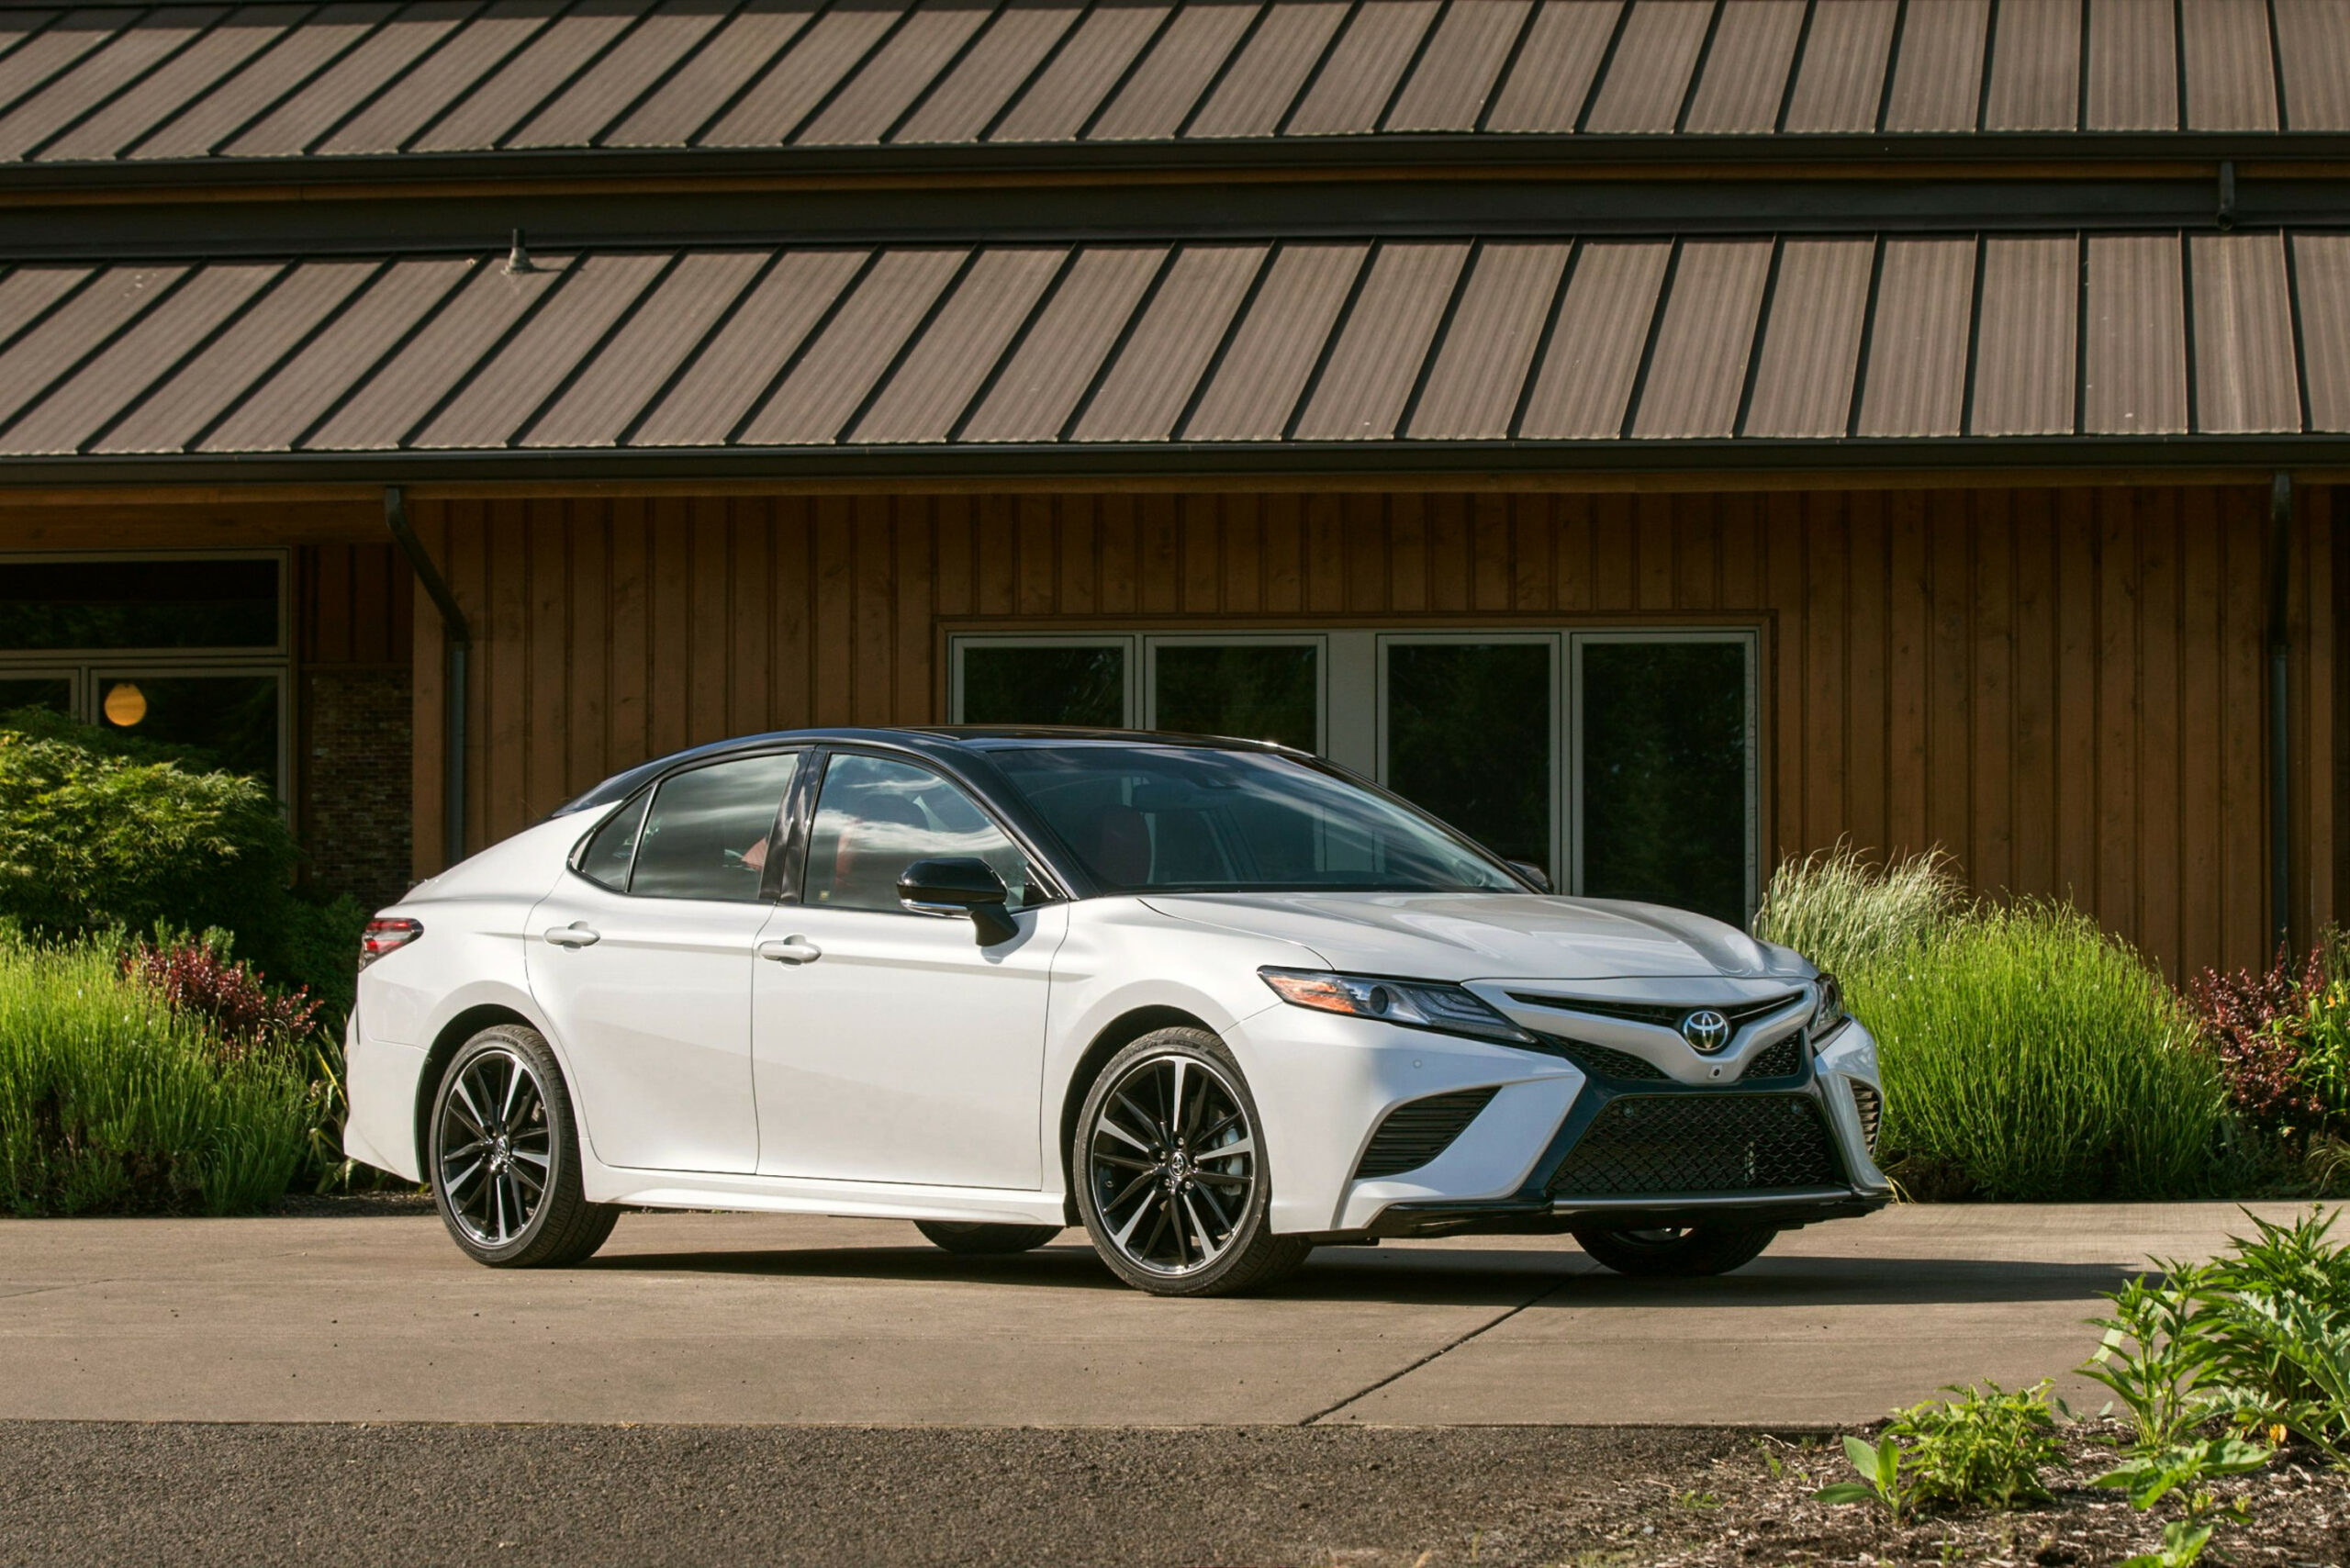 9 Toyota Camry Review, Pricing, and Specs - toyota camry hybrid 2020